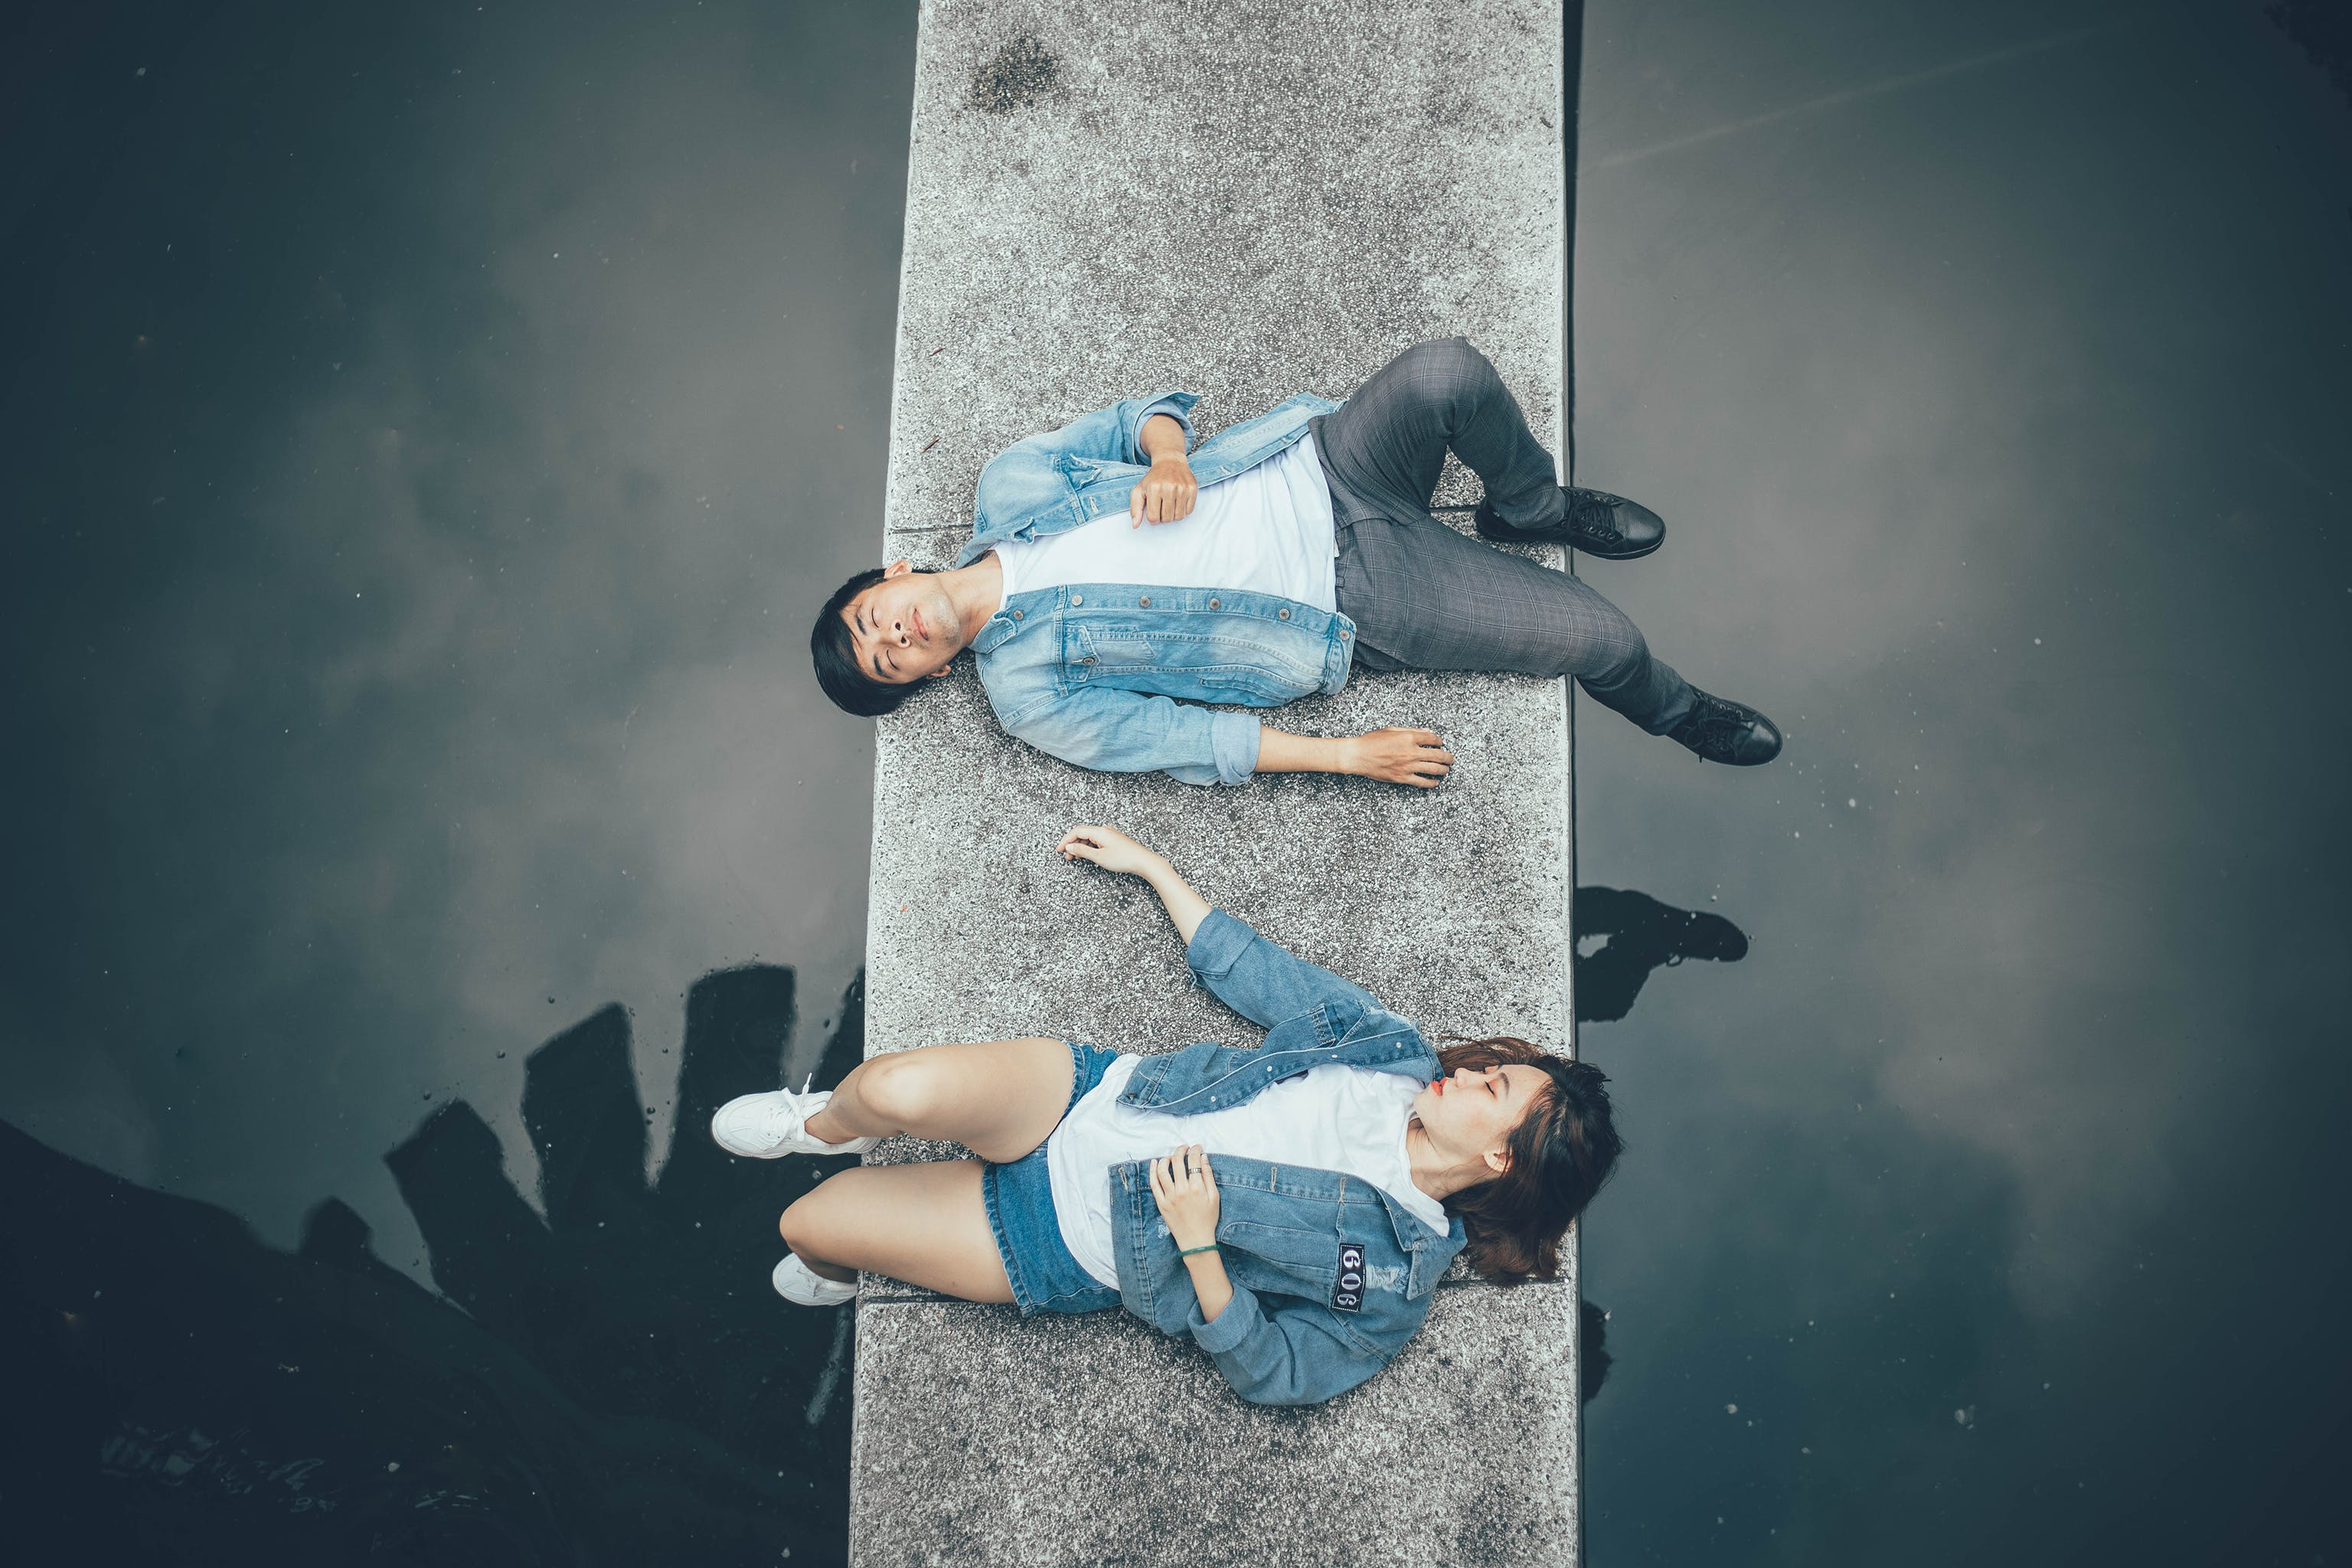 Woman and Man Lying on Walkway